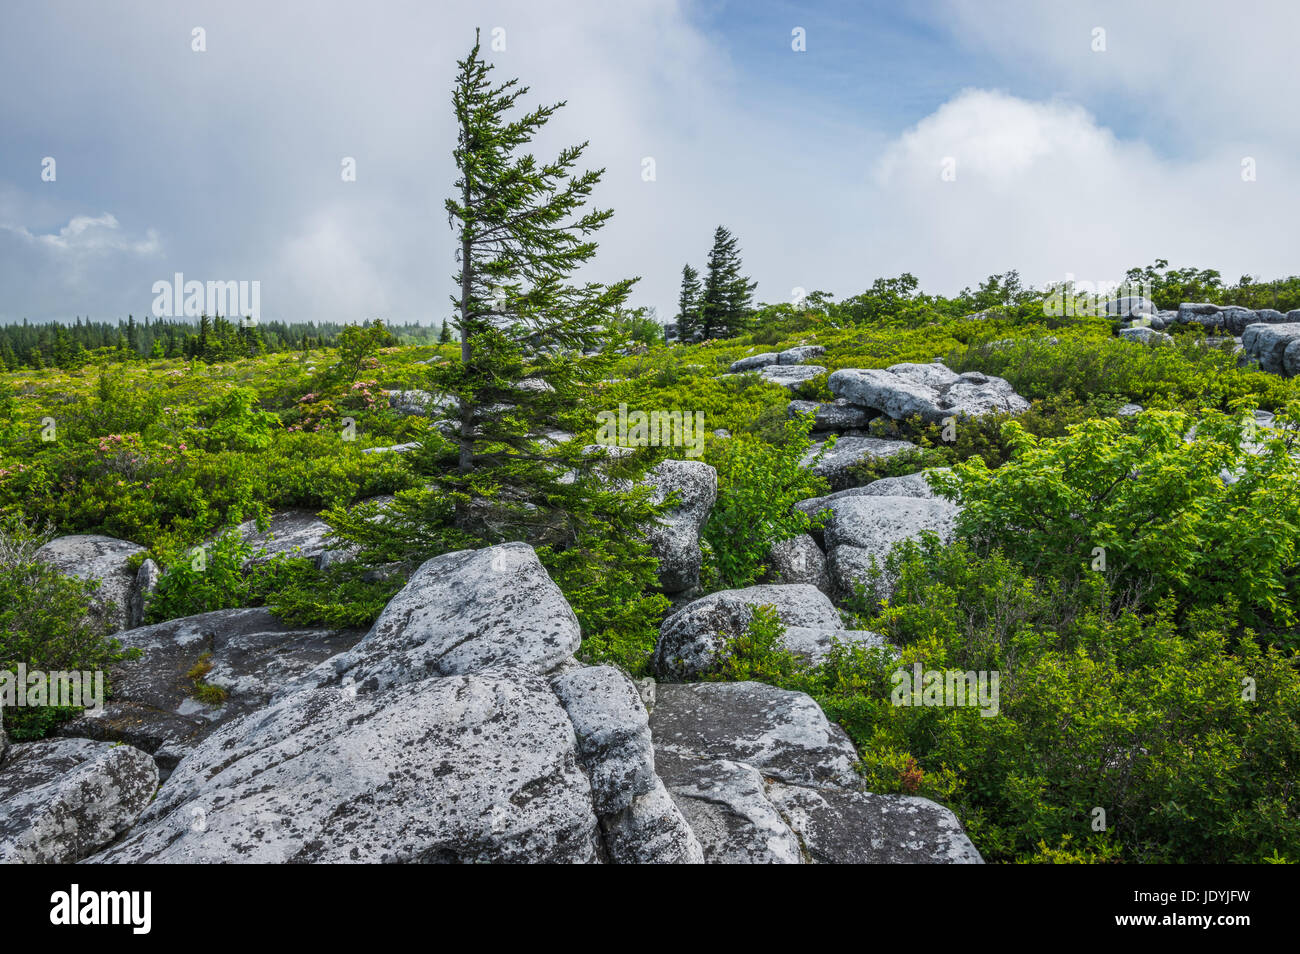 Flagged pine mark the distinctive rocky outcroppings of Bear Rocks in the Dolly Sods Wilderness Area of West Virginia, - Stock Image